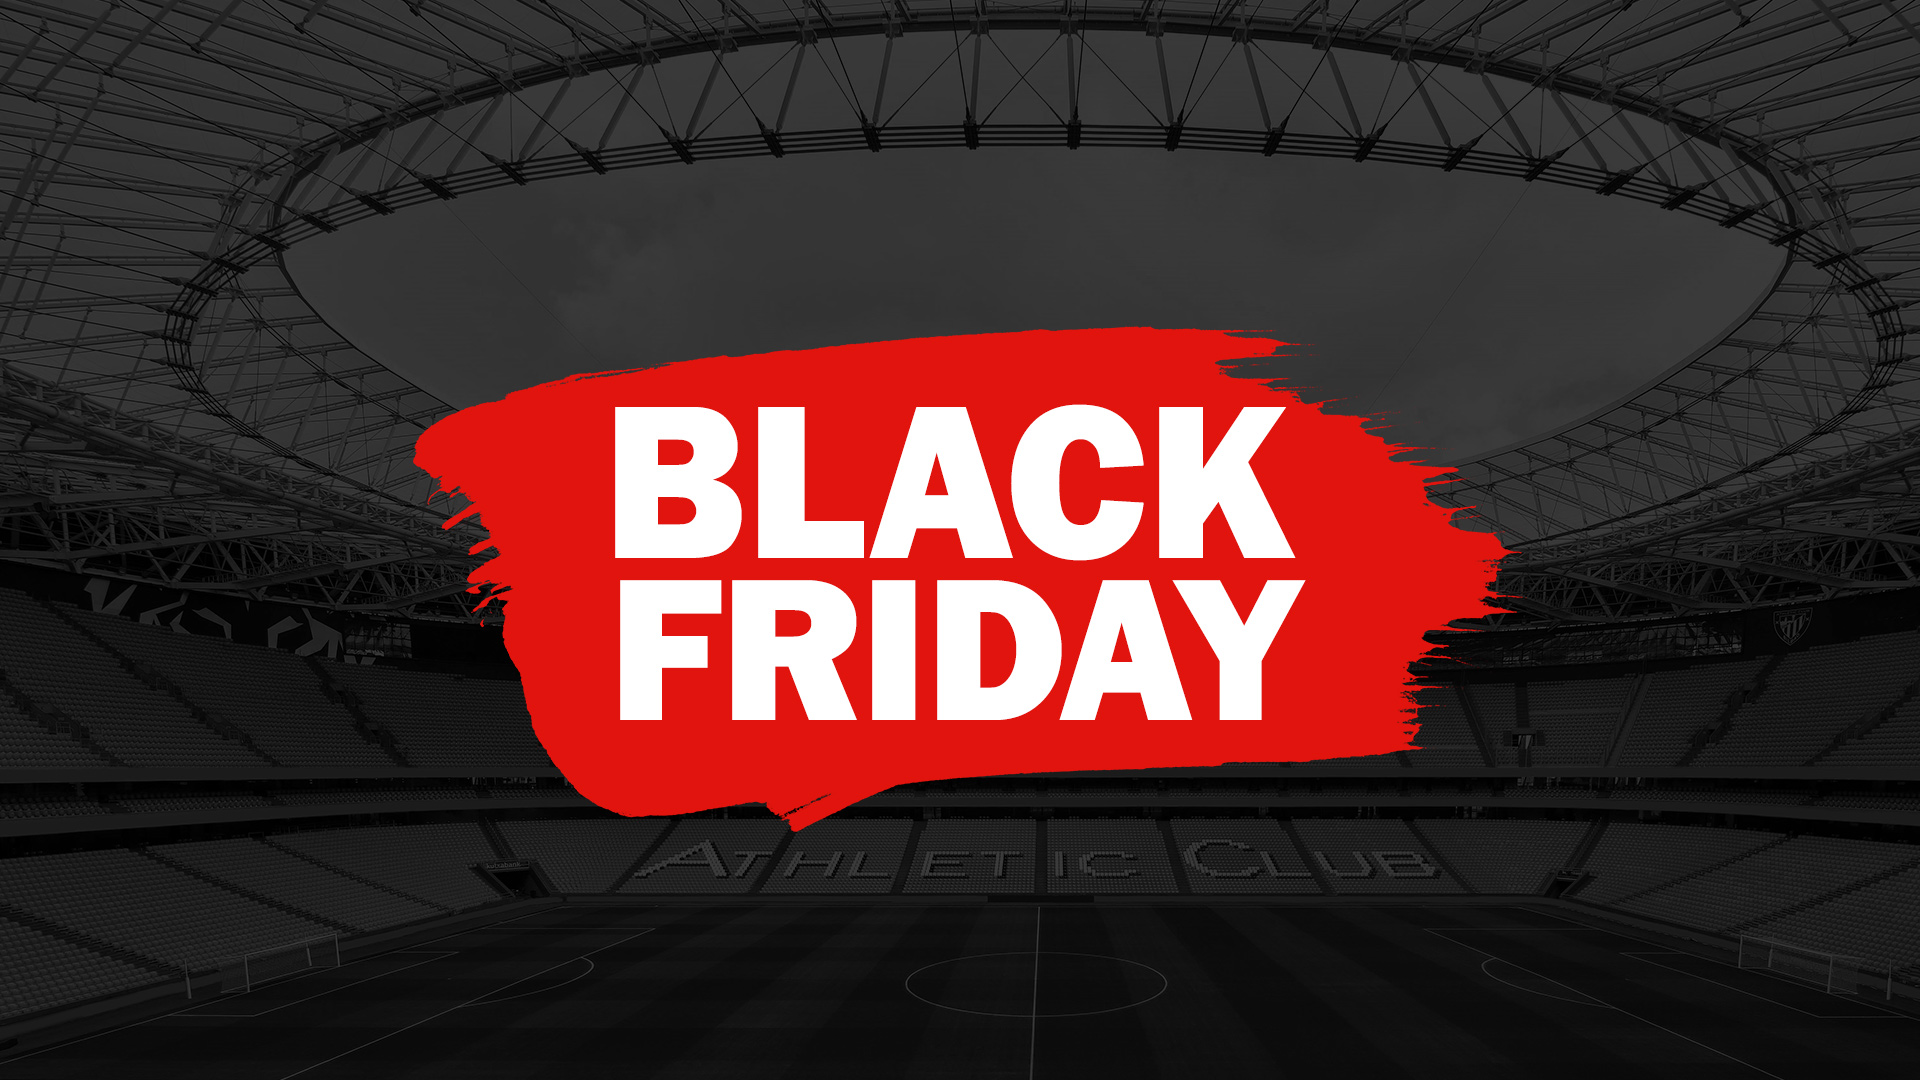 Black Friday astea Athletic Cluben dendetan